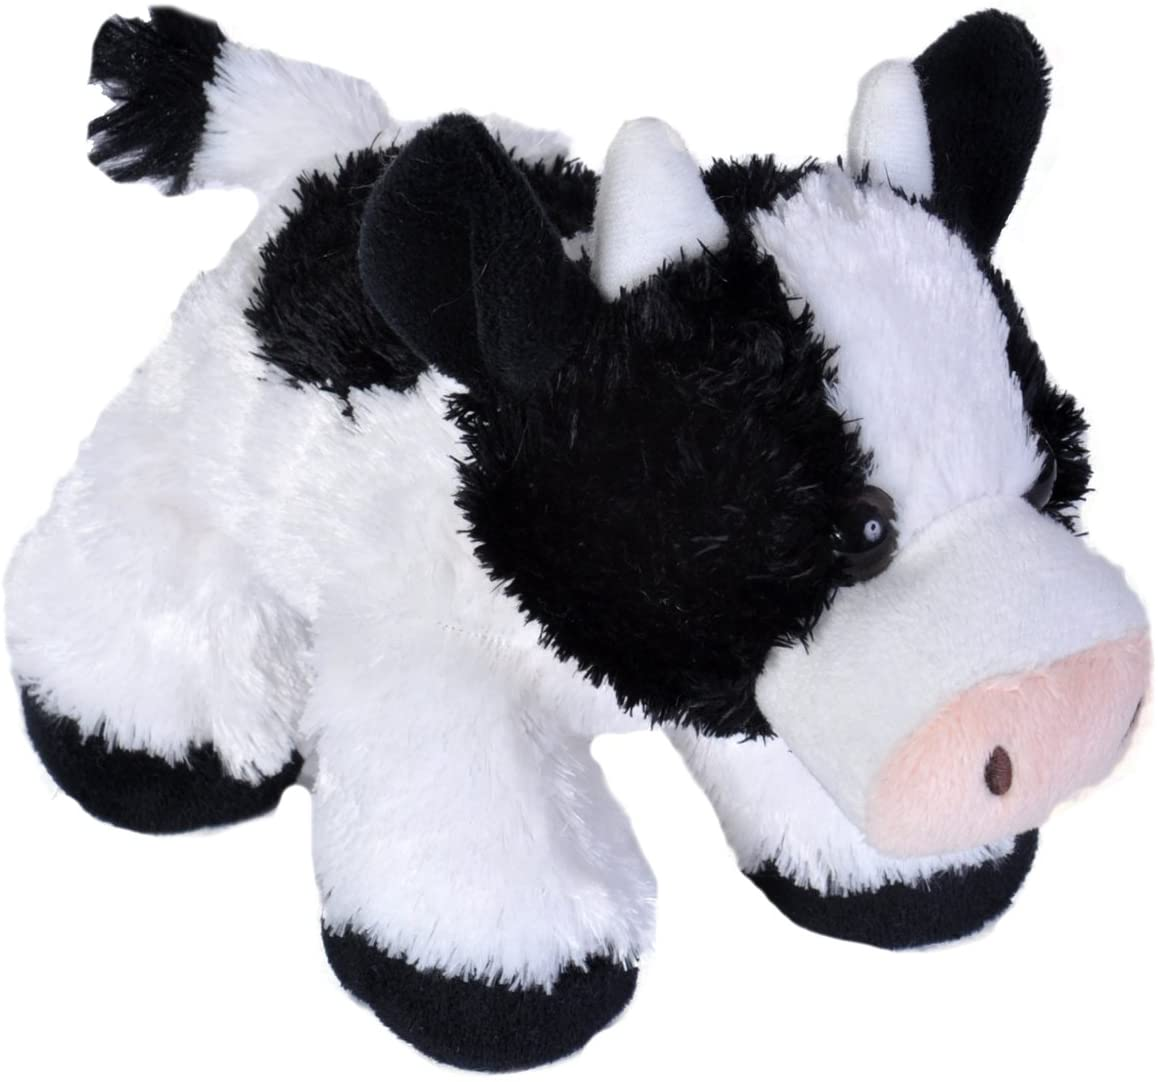 Wild Republic Cow Plush, Stuffed Animal, Plush Toy, Gifts for Kids, Hug'Ems 7 inches